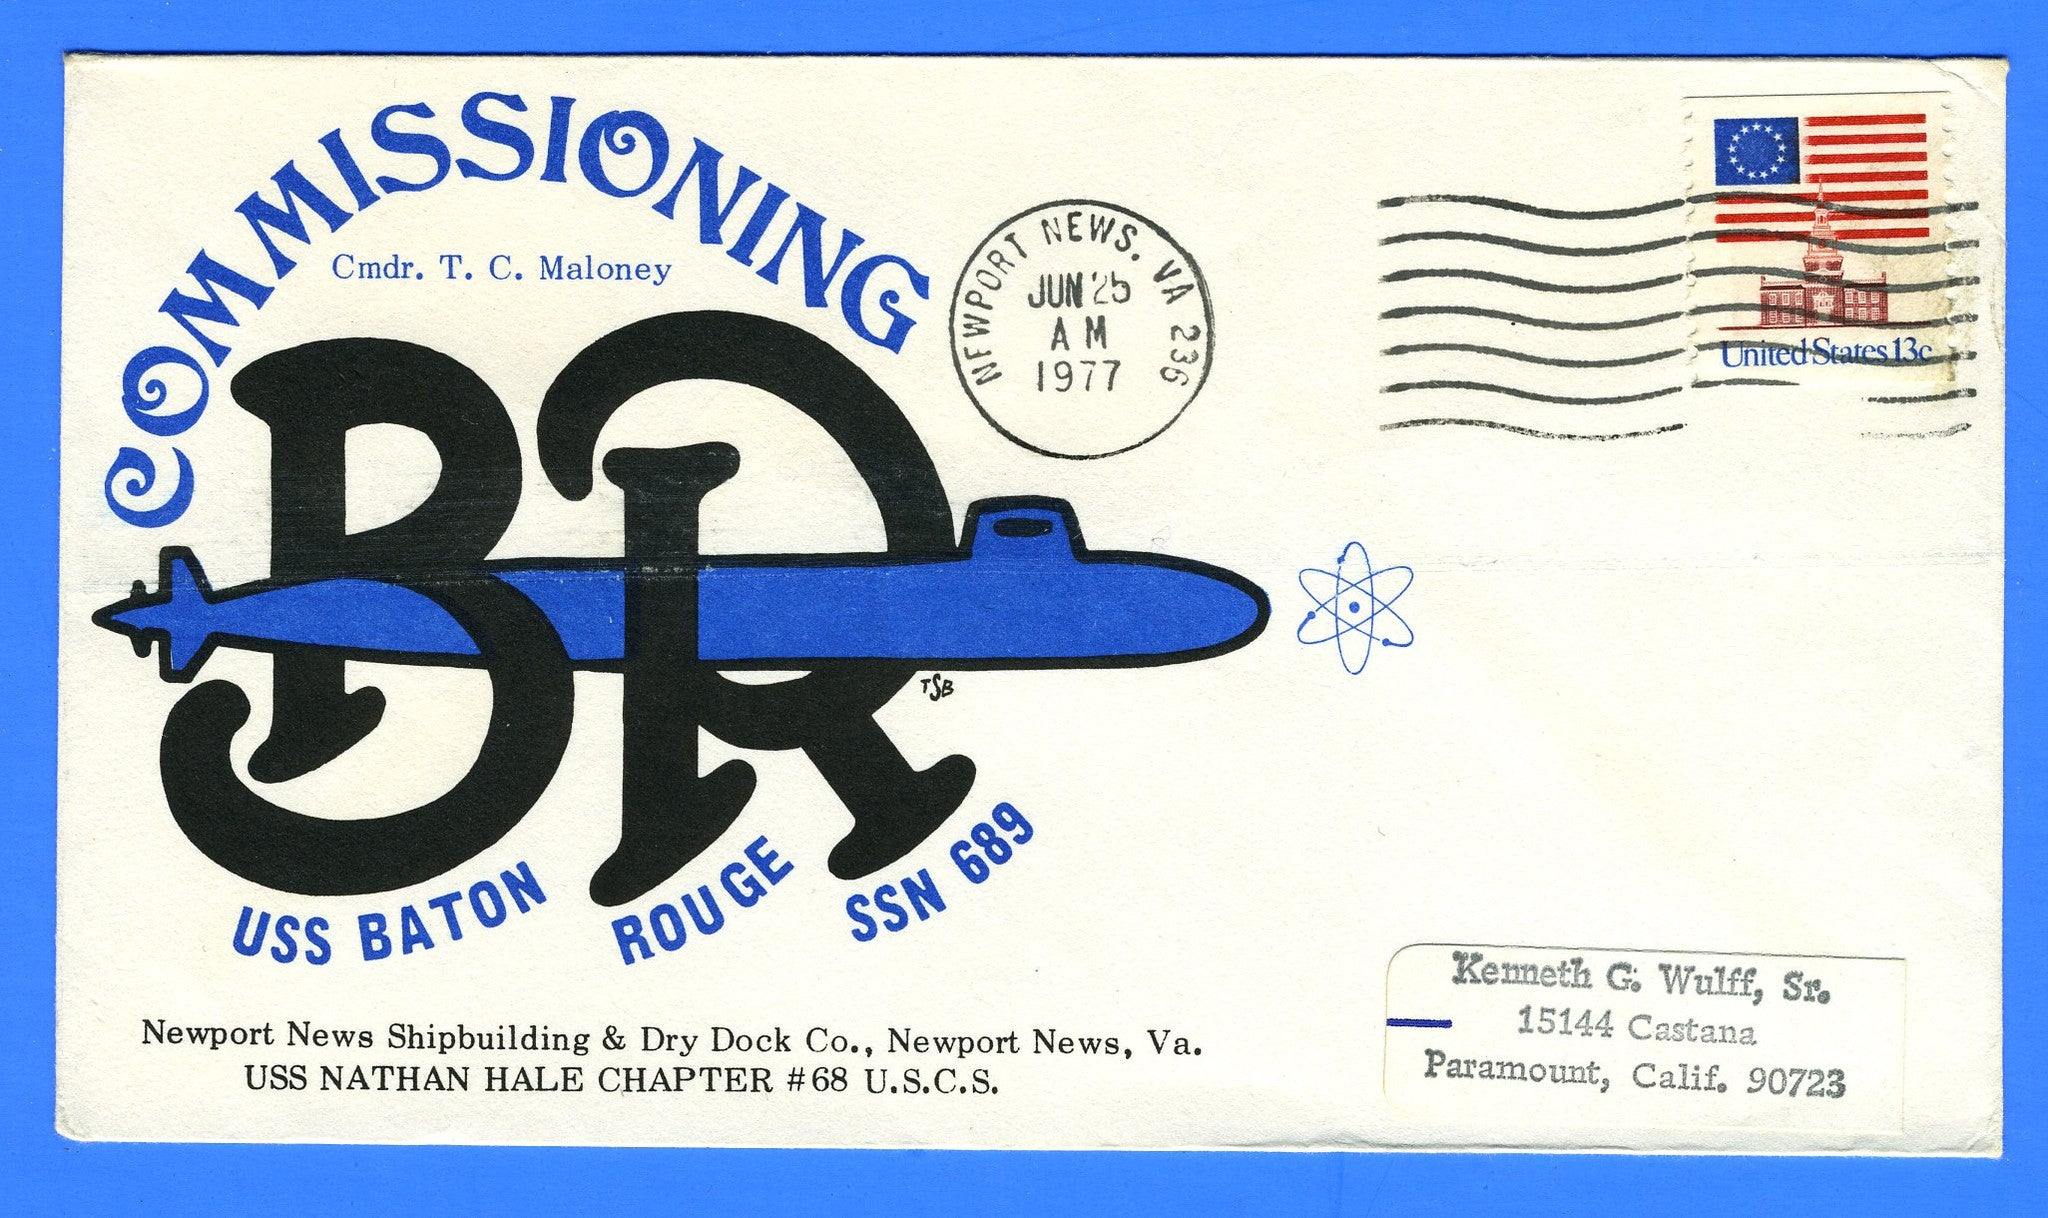 Submarine USS Baton Rouge SSN-698 Commissioning June 25, 1977 - Cachet by USS Nathan Hale Chapter No. 68, USCS